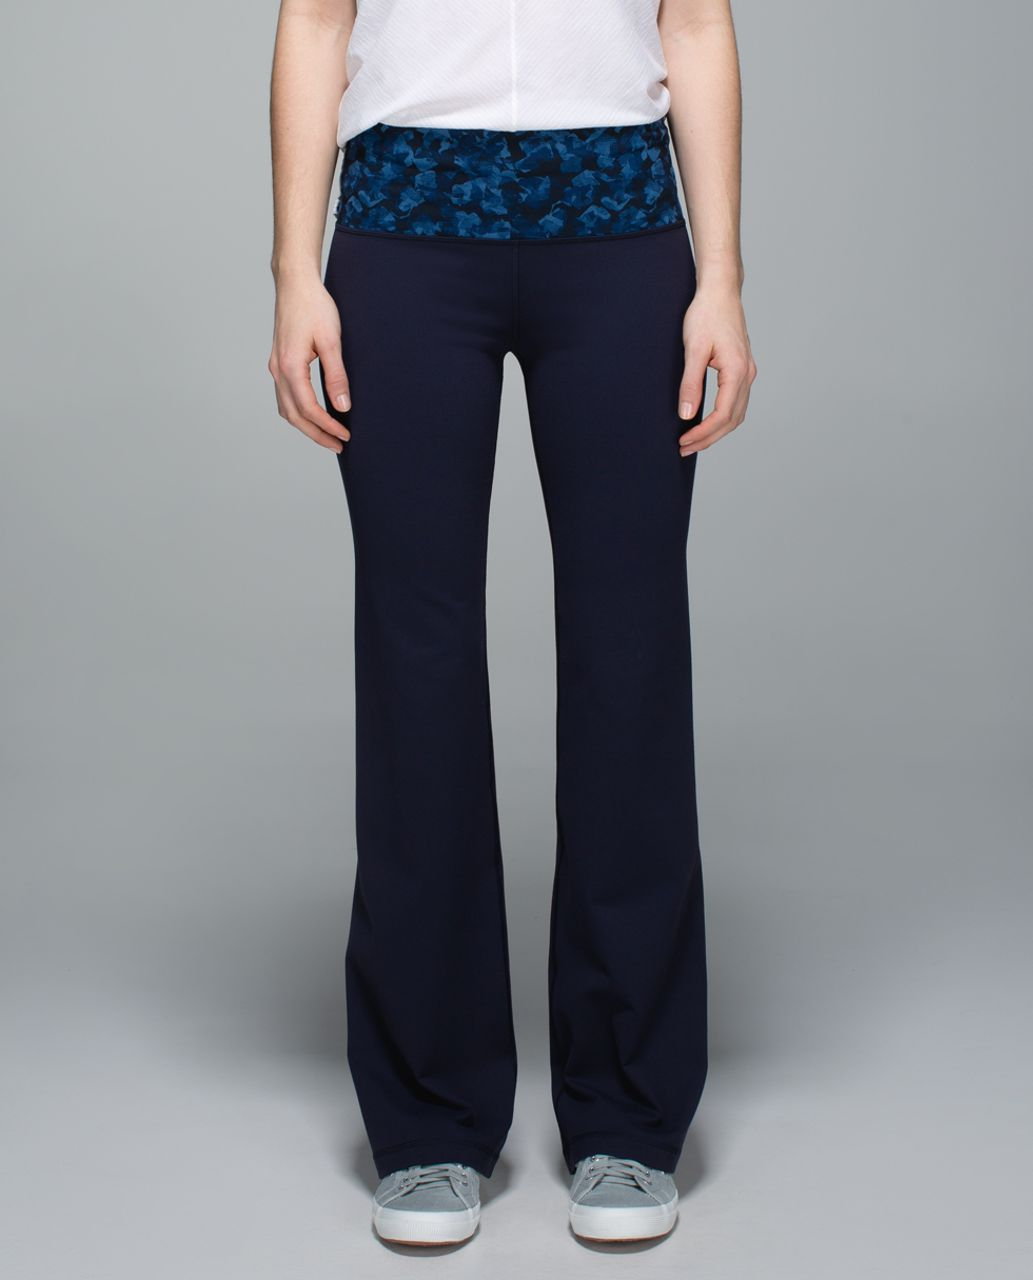 Lululemon Groove Pant II *Full-On Luon (Roll Down - Regular) - Naval Blue / Mystic Jungle Hawk Blue Harbour Blue